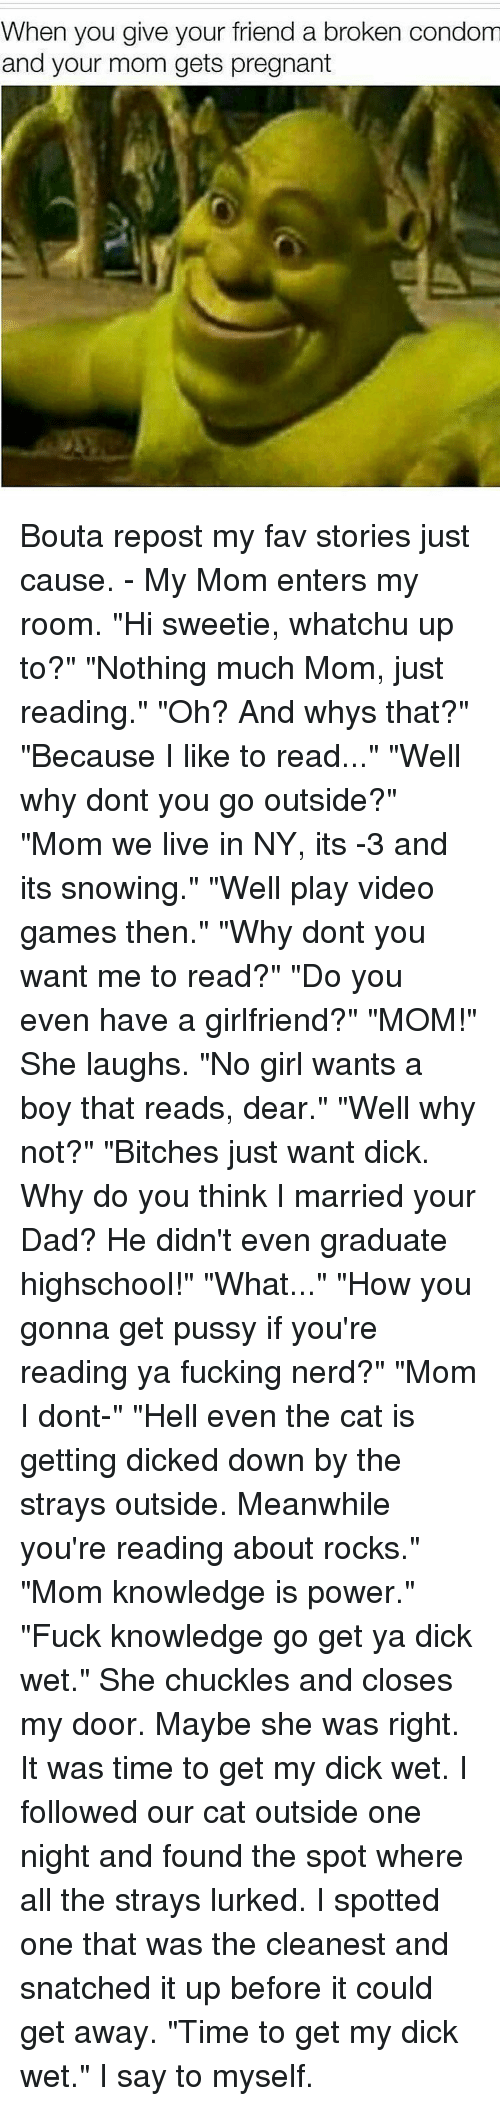 """Hi Sweetie: When you give your friend a broken condom  and your mom gets pregnant Bouta repost my fav stories just cause. - My Mom enters my room. """"Hi sweetie, whatchu up to?"""" """"Nothing much Mom, just reading."""" """"Oh? And whys that?"""" """"Because I like to read..."""" """"Well why dont you go outside?"""" """"Mom we live in NY, its -3 and its snowing."""" """"Well play video games then."""" """"Why dont you want me to read?"""" """"Do you even have a girlfriend?"""" """"MOM!"""" She laughs. """"No girl wants a boy that reads, dear."""" """"Well why not?"""" """"Bitches just want dick. Why do you think I married your Dad? He didn't even graduate highschool!"""" """"What..."""" """"How you gonna get pussy if you're reading ya fucking nerd?"""" """"Mom I dont-"""" """"Hell even the cat is getting dicked down by the strays outside. Meanwhile you're reading about rocks."""" """"Mom knowledge is power."""" """"Fuck knowledge go get ya dick wet."""" She chuckles and closes my door. Maybe she was right. It was time to get my dick wet. I followed our cat outside one night and found the spot where all the strays lurked. I spotted one that was the cleanest and snatched it up before it could get away. """"Time to get my dick wet."""" I say to myself."""